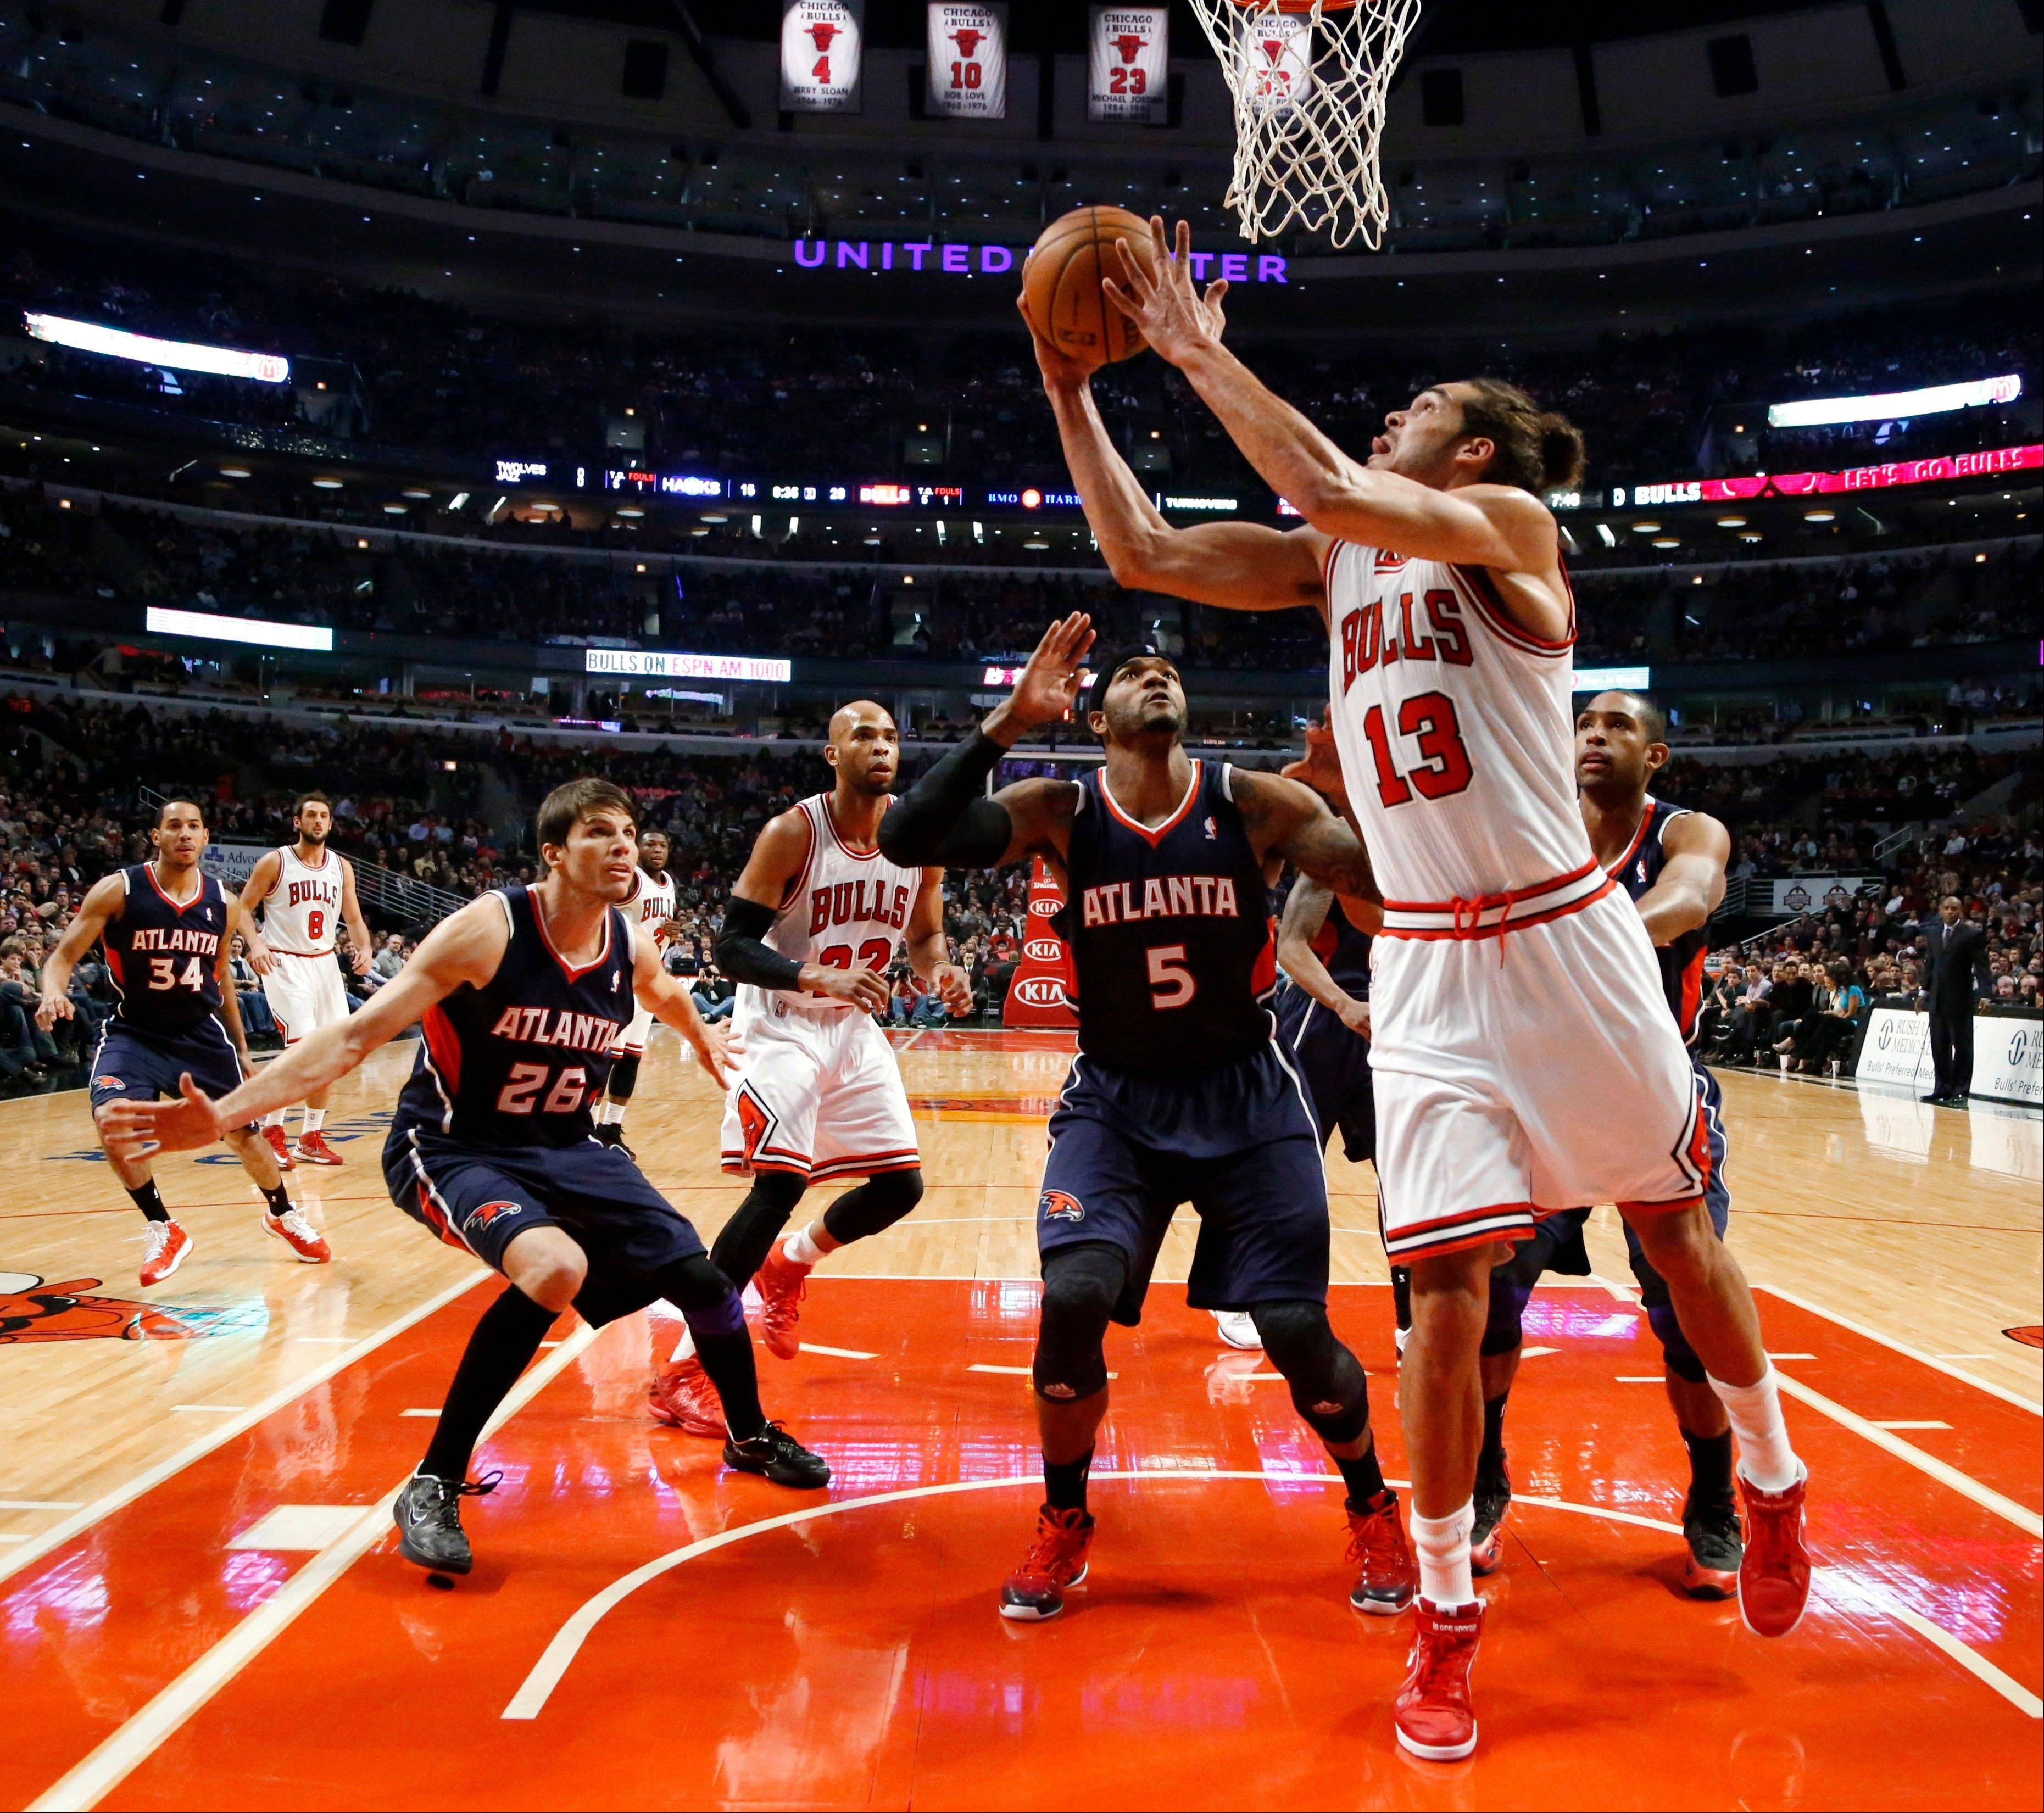 Chicago Bulls center Joakim Noah (13) shoots a reverse layup past Atlanta Hawks' Kyle Korver (26) and Josh Smith (5) during the first half of an NBA basketball game Monday, Jan. 14, 2013, in Chicago.